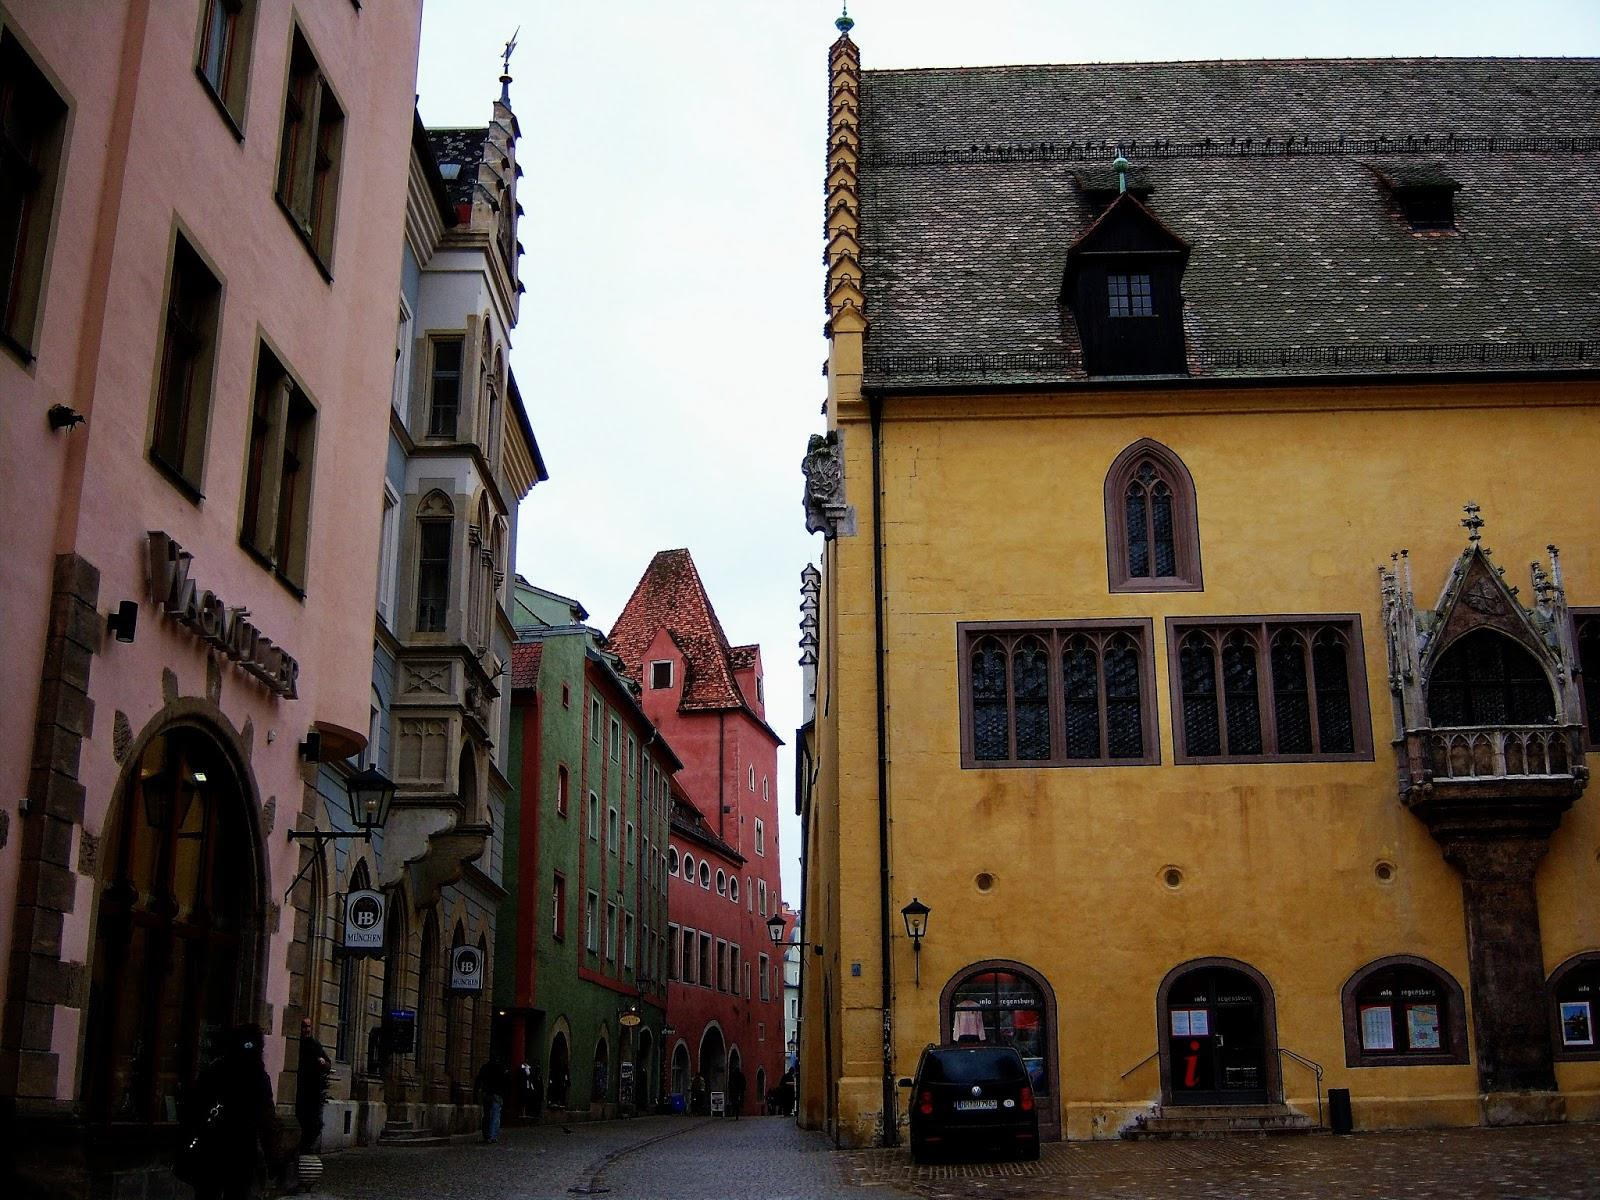 5-five-5: Old town of Regensburg with Stadtamhof (Germany)